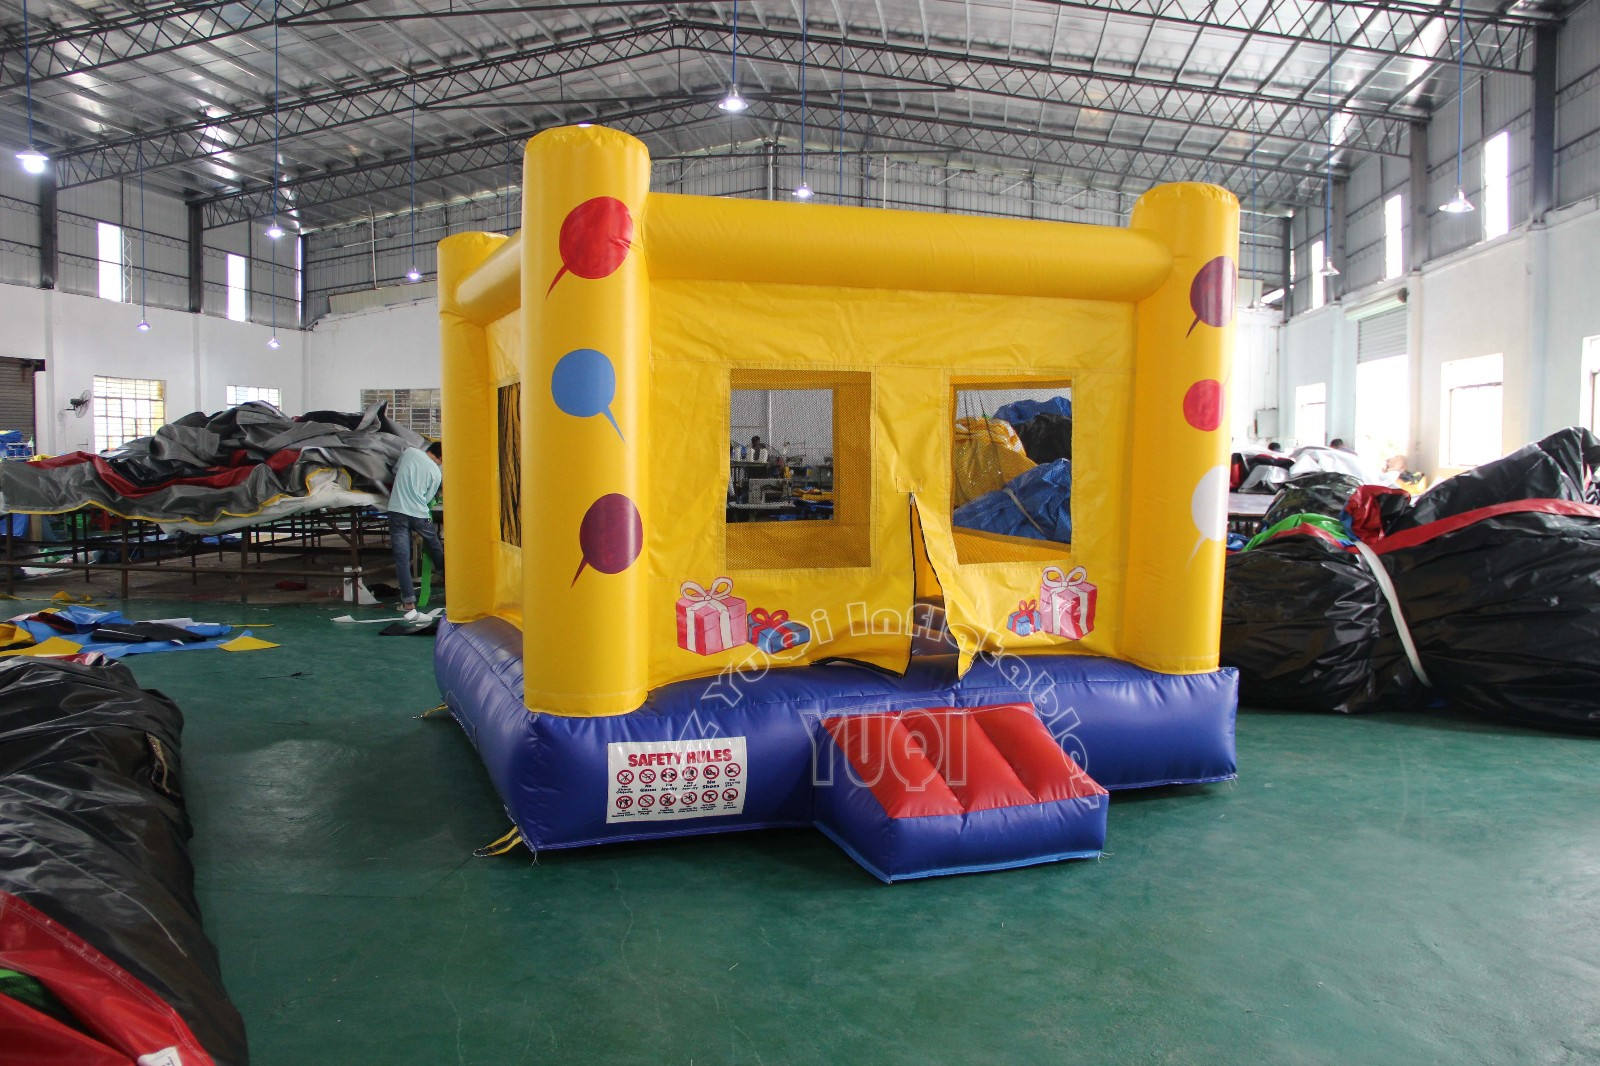 YUQI-Find Bounce House Blow Up Bounce House From Yuqi Inflatables